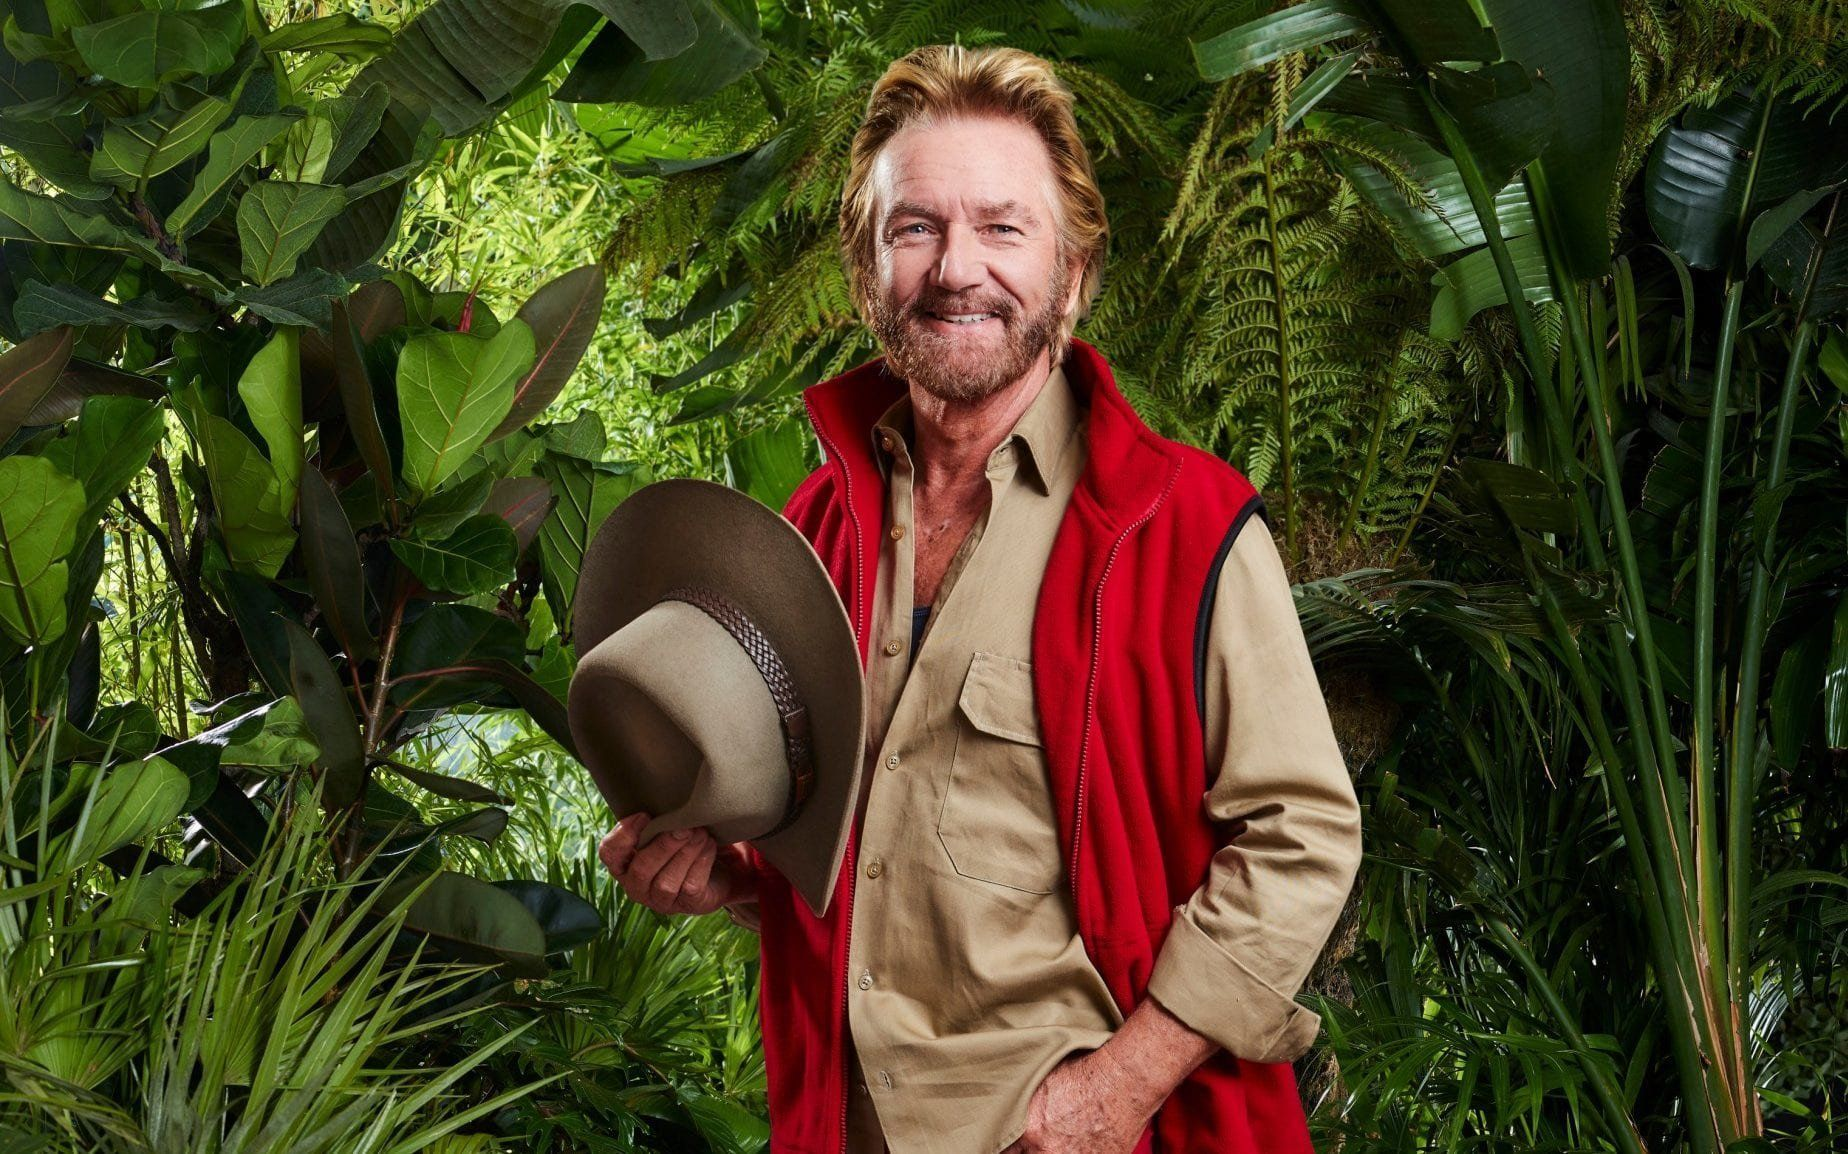 IT'S OFFICIAL: Noel Edmonds Joins 'I'm A Celebrity' Line-Up And Vows To Quit TV If He